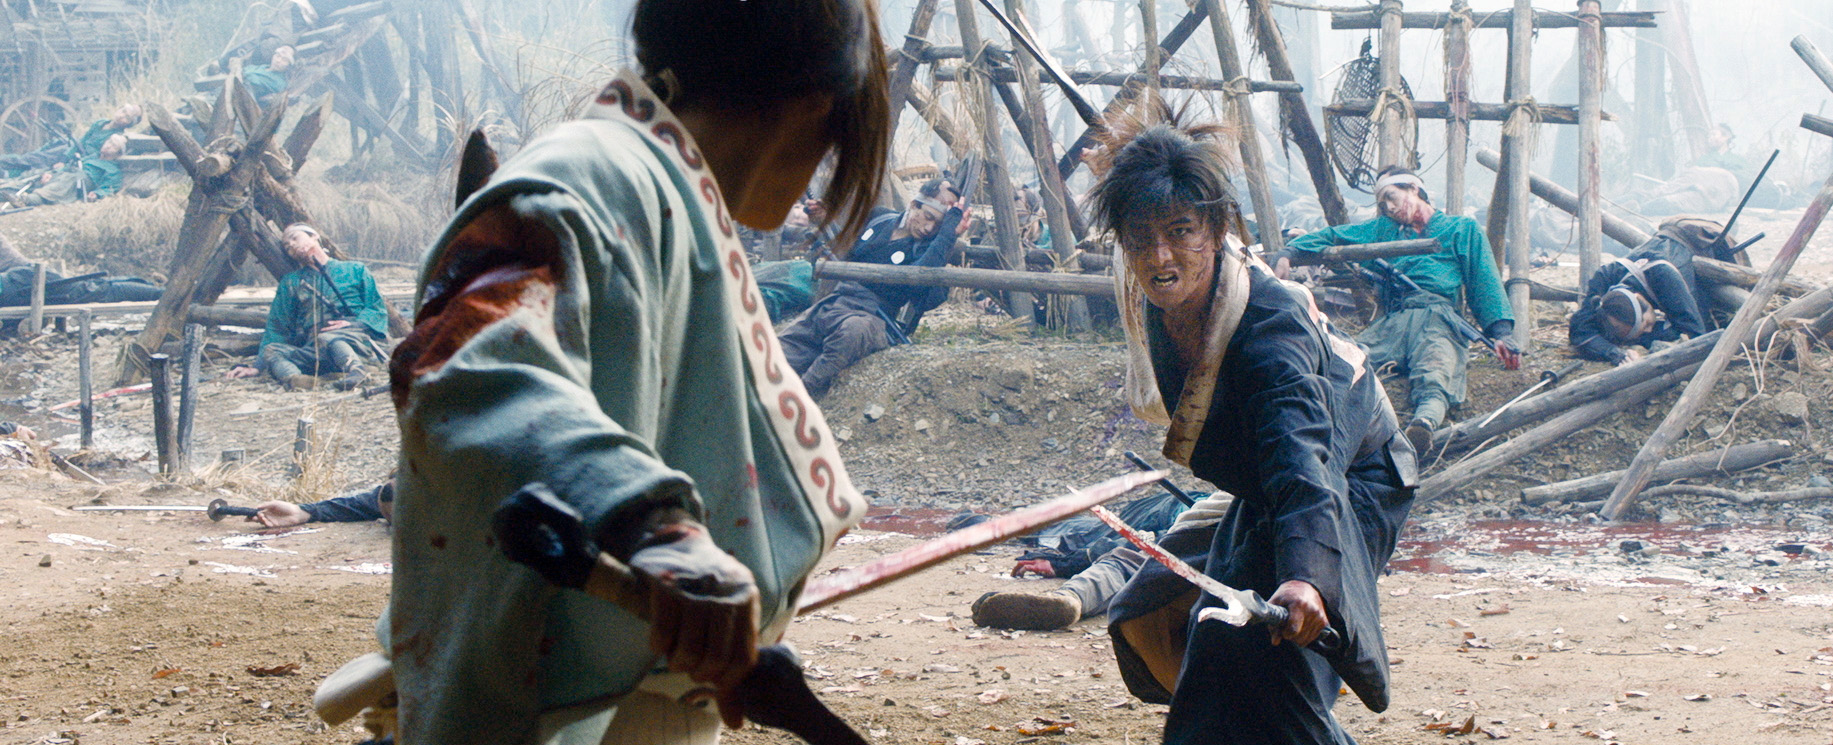 'Blade of the Immortal' tries very hard to slice through convention